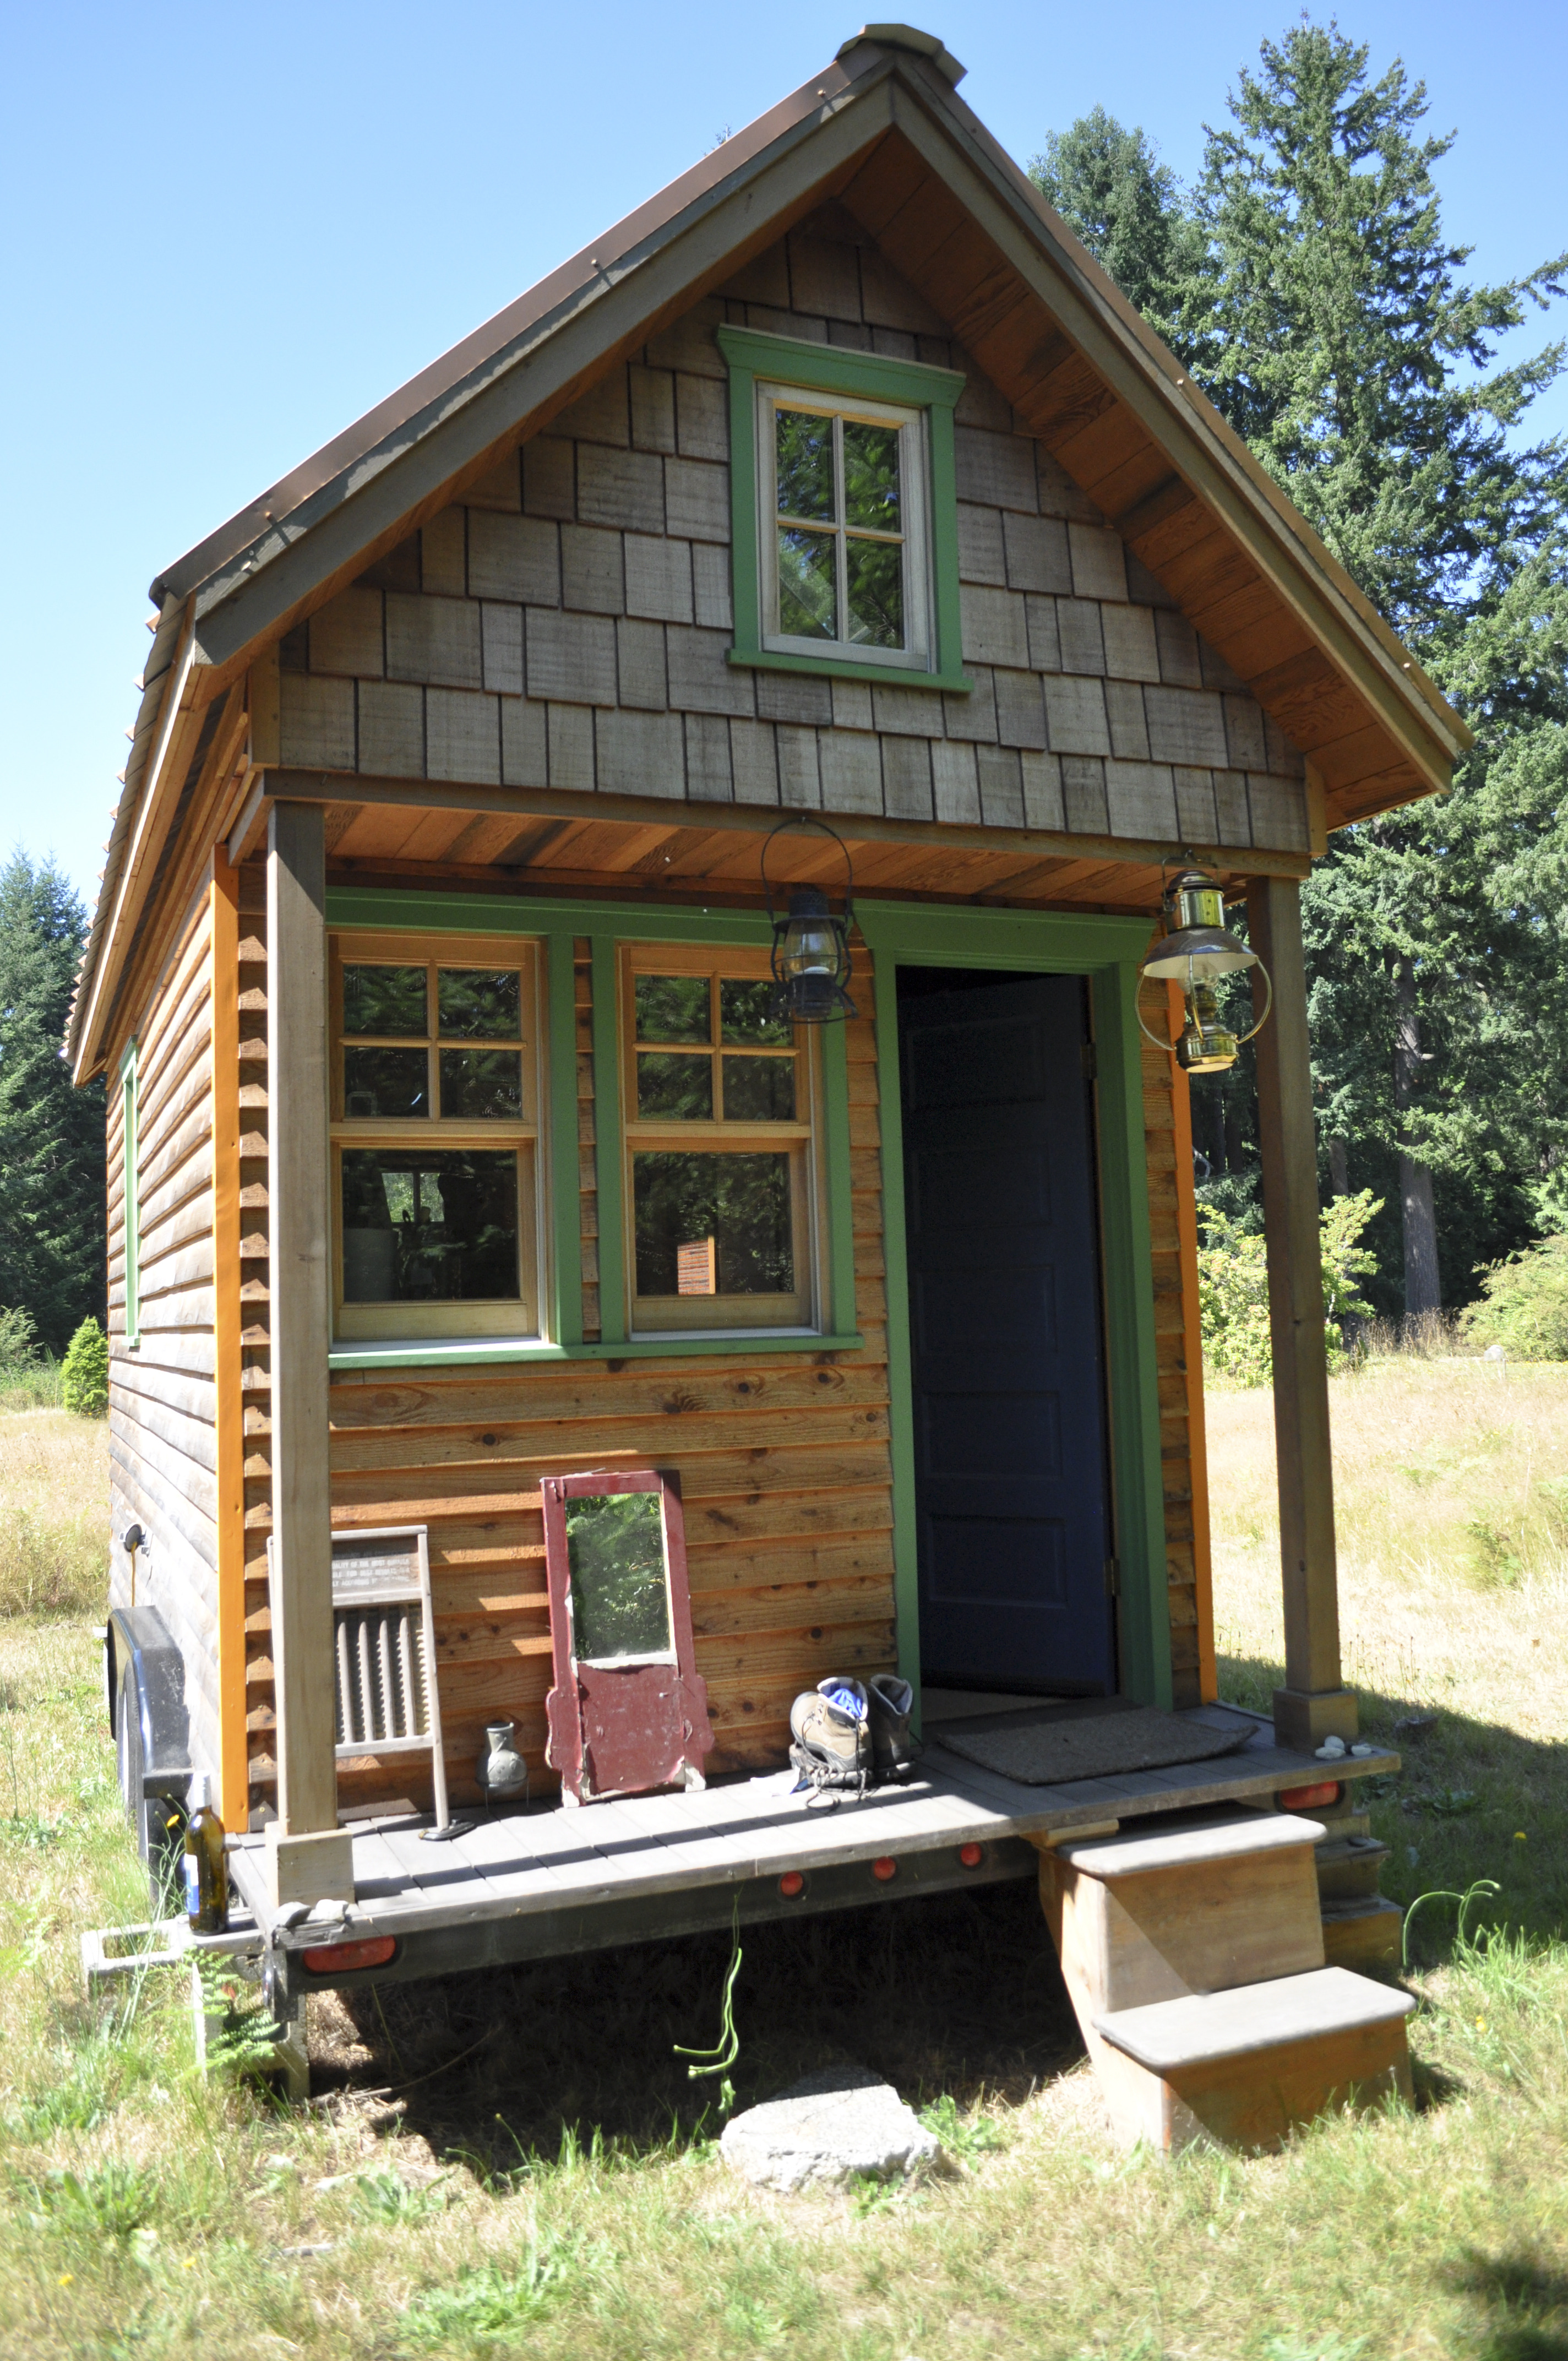 Building A Small Home On A Budget Luxury Tiny House Movement